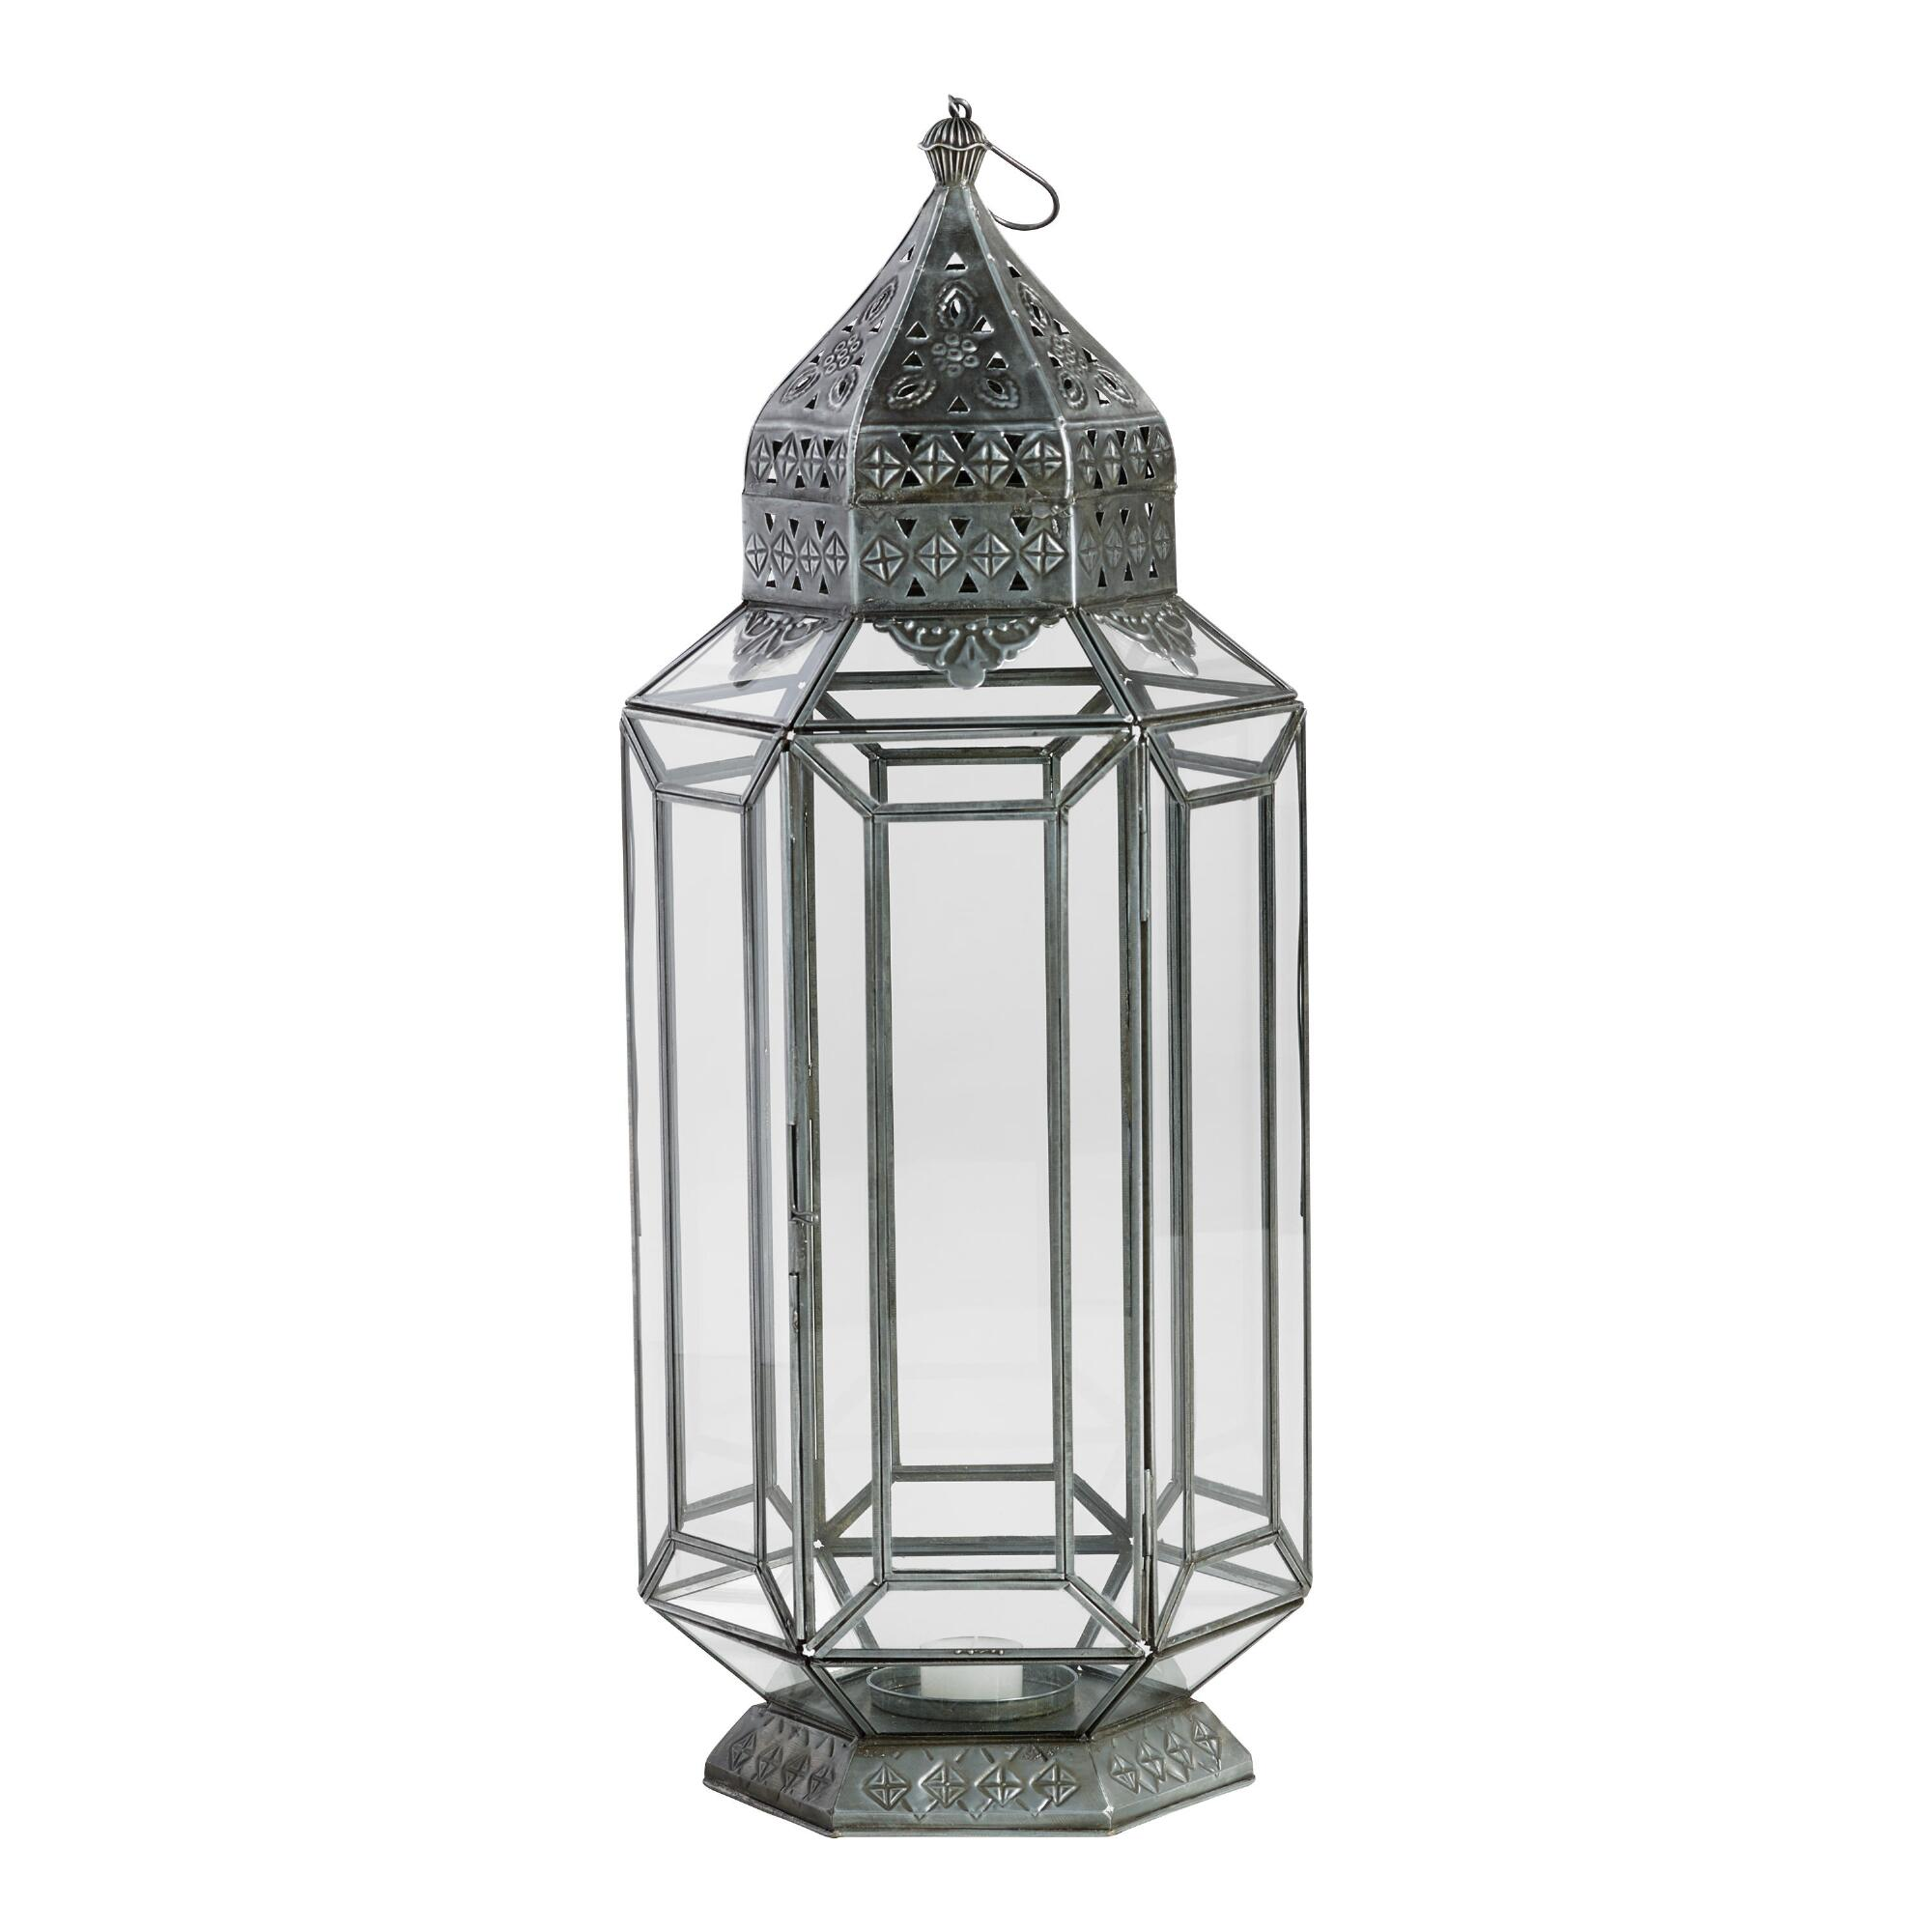 Metal, wood, glass, ceramic, stone, stainless steel, and plastic are just some of the options that you can pick from when buying a lantern for yourself or as a gift for someone special. A ceramic or stone lantern is perfect for a patio, while a wooden candle lantern will be nice for a deck or garden space.